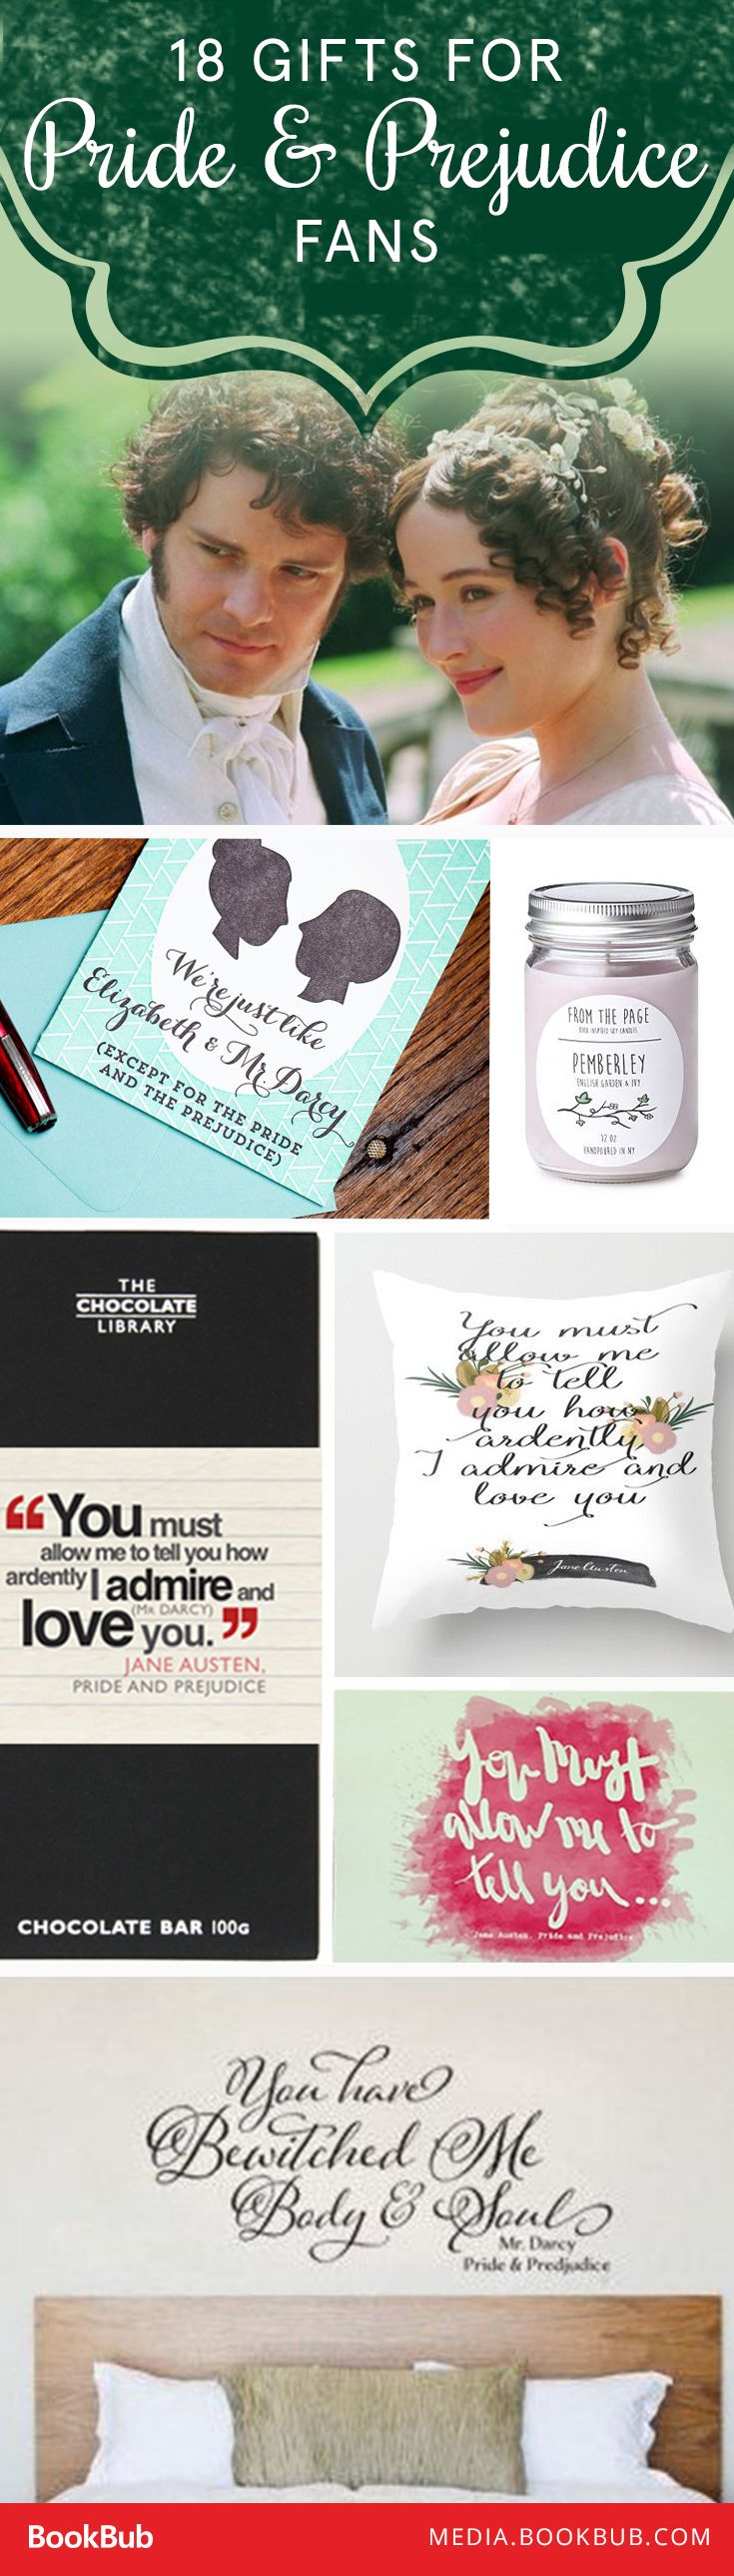 145 best Christmas Gift Ideas for Book Lovers images on Pinterest ...